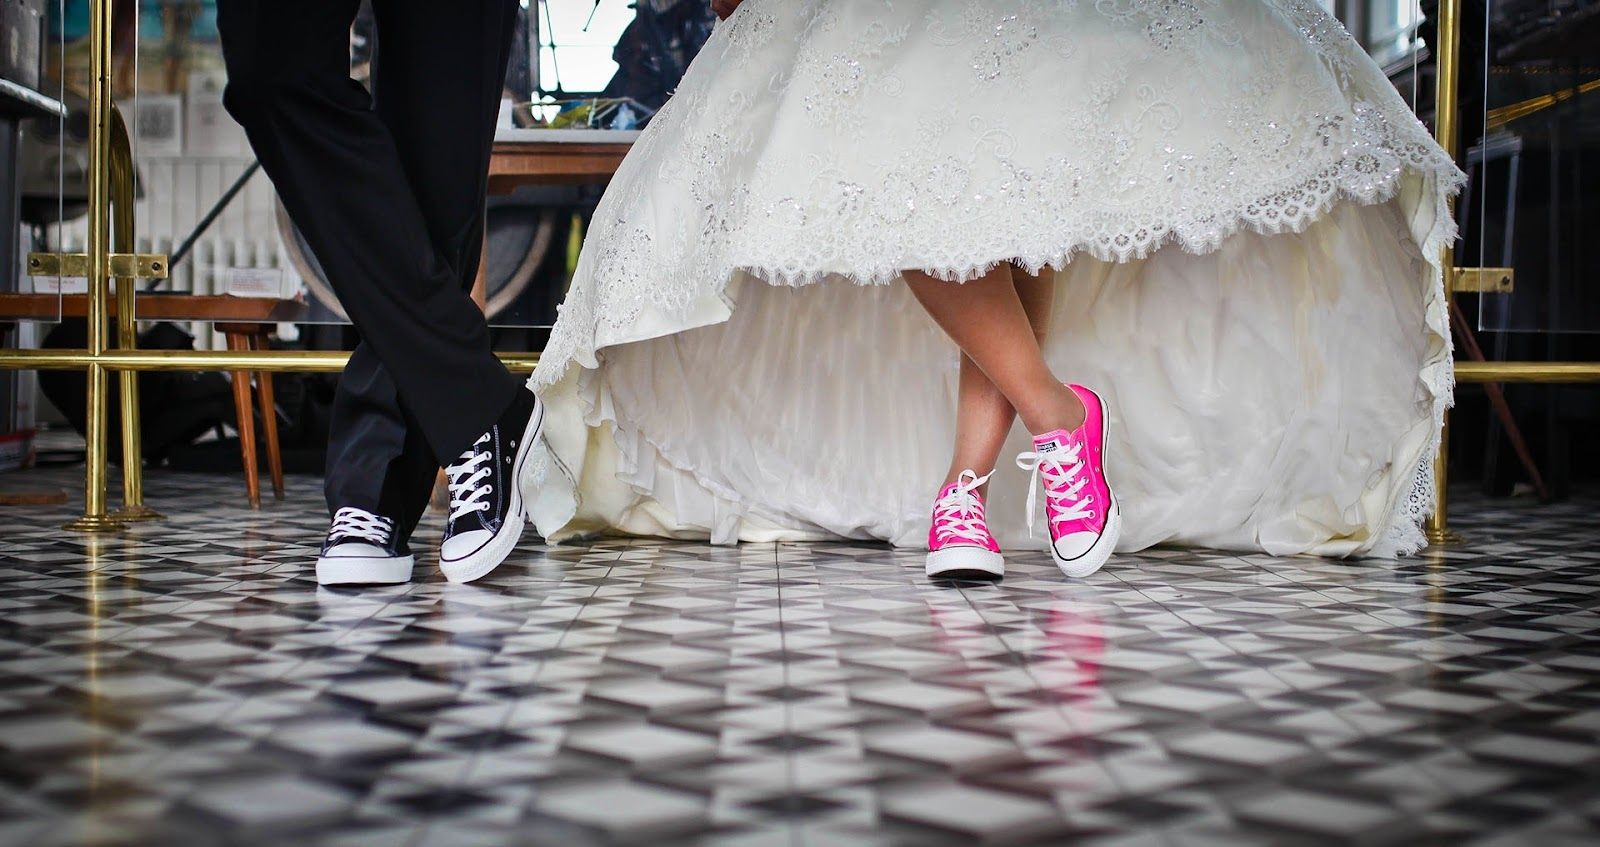 Picture of wedding attire and casual shoes